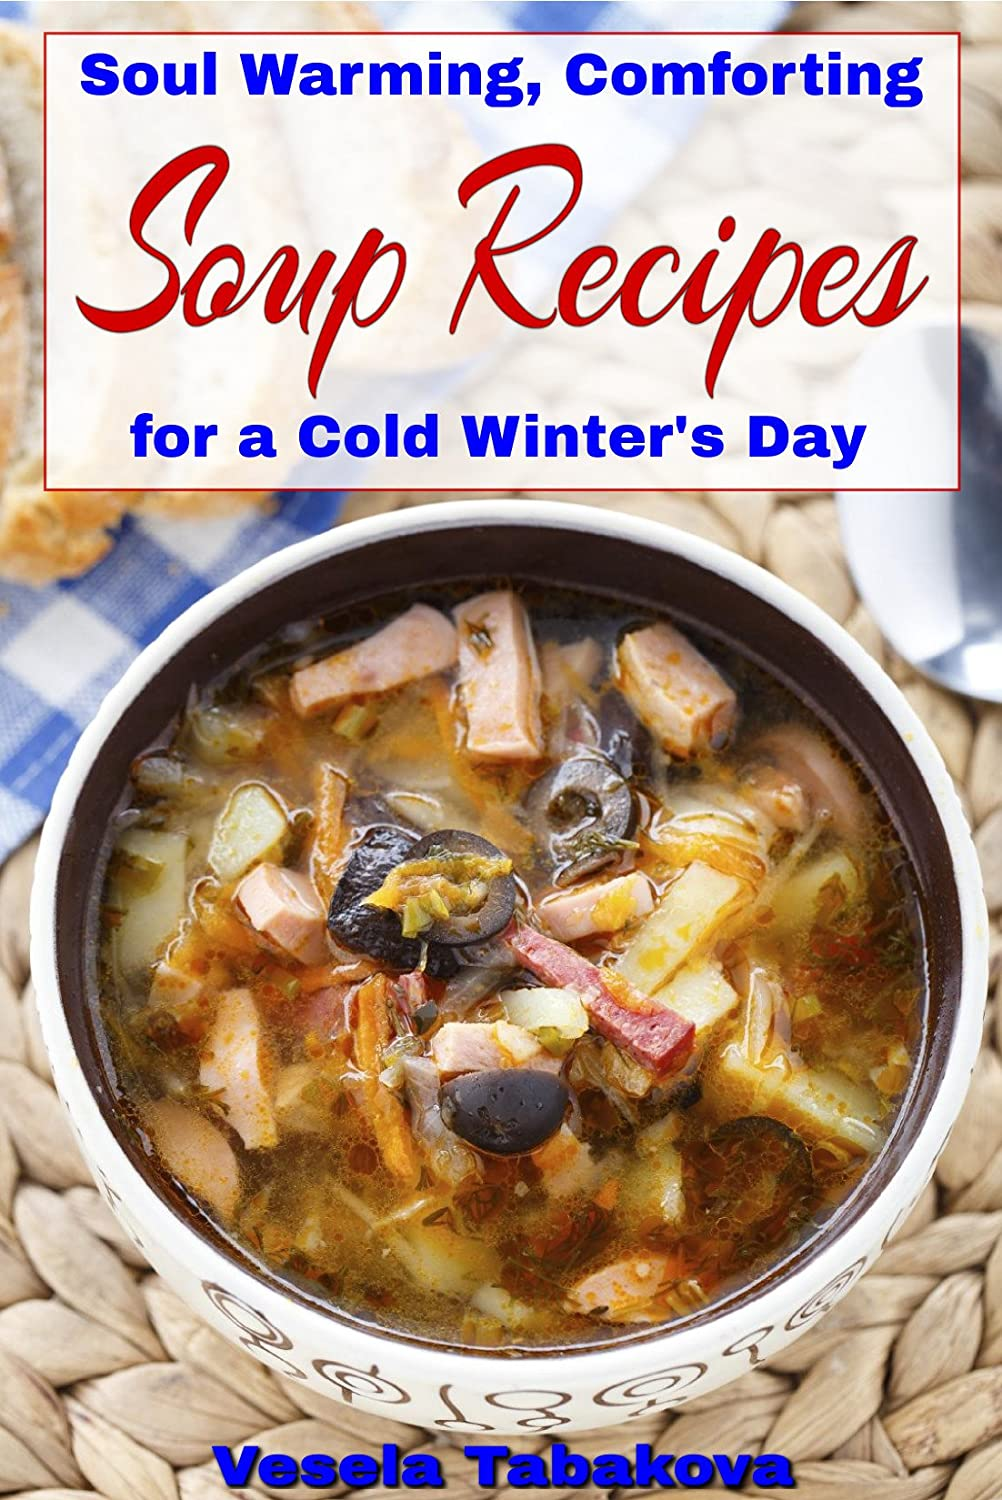 http://www.amazon.com/Warming-Comforting-Recipes-Winters-Cookbook-ebook/dp/B00IXF2SEU/ref=as_sl_pc_ss_til?tag=lettfromahome-20&linkCode=w01&linkId=HEQN5MQJEESPN5YK&creativeASIN=B00IXF2SEU